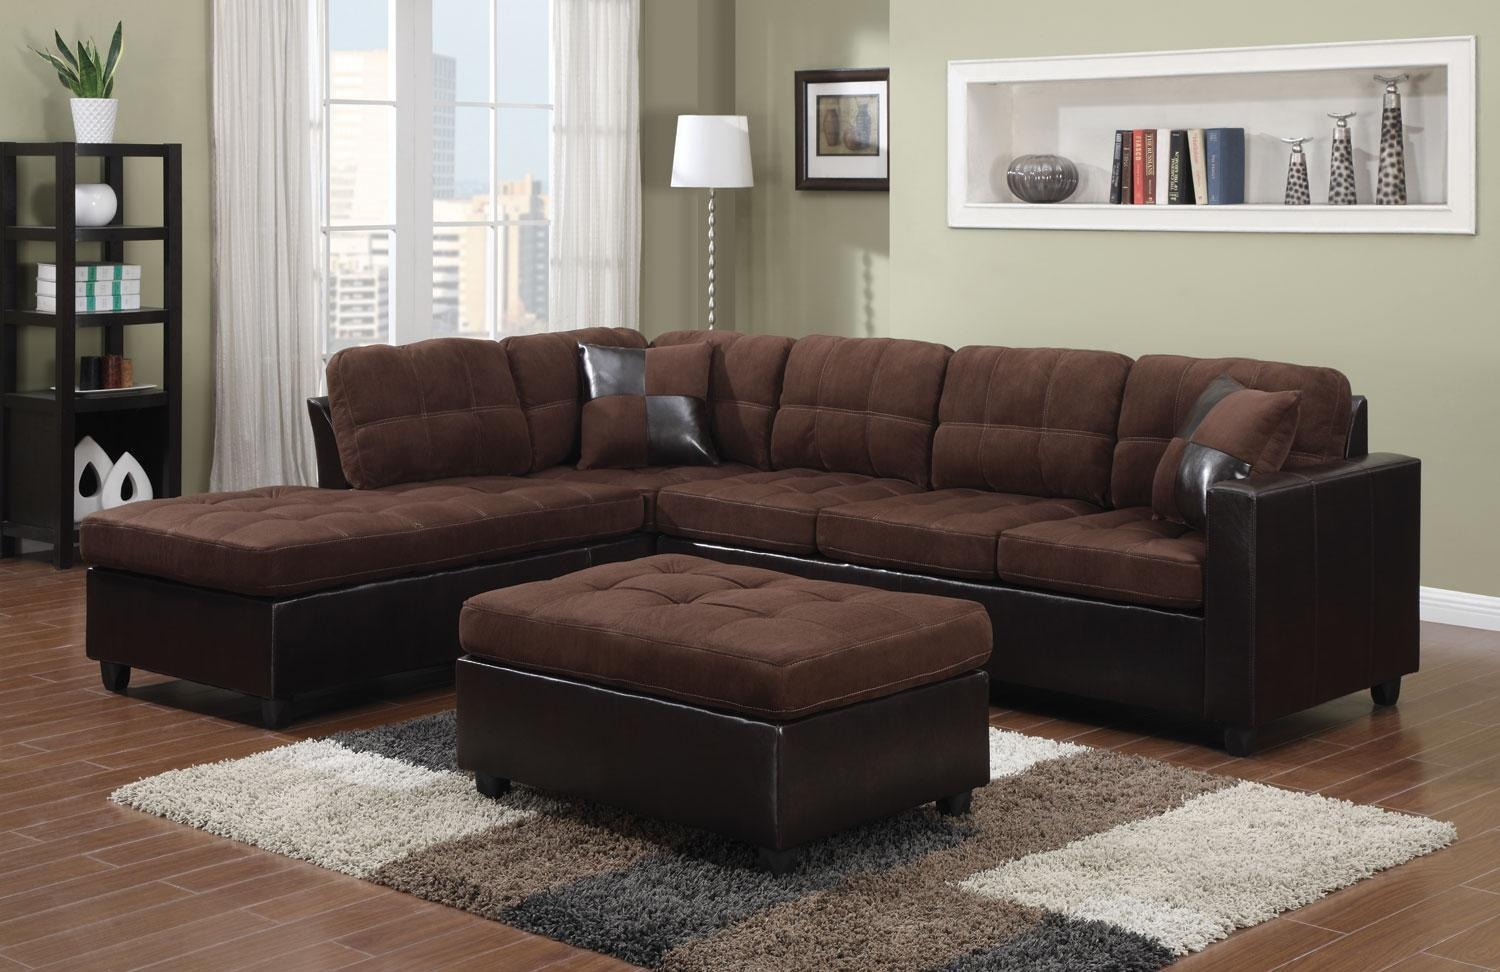 Mallory Lf Iv Sectional Sofa 505655 Coaster Furniture Sectional Throughout Coaster Sectional Sofas (Image 18 of 20)